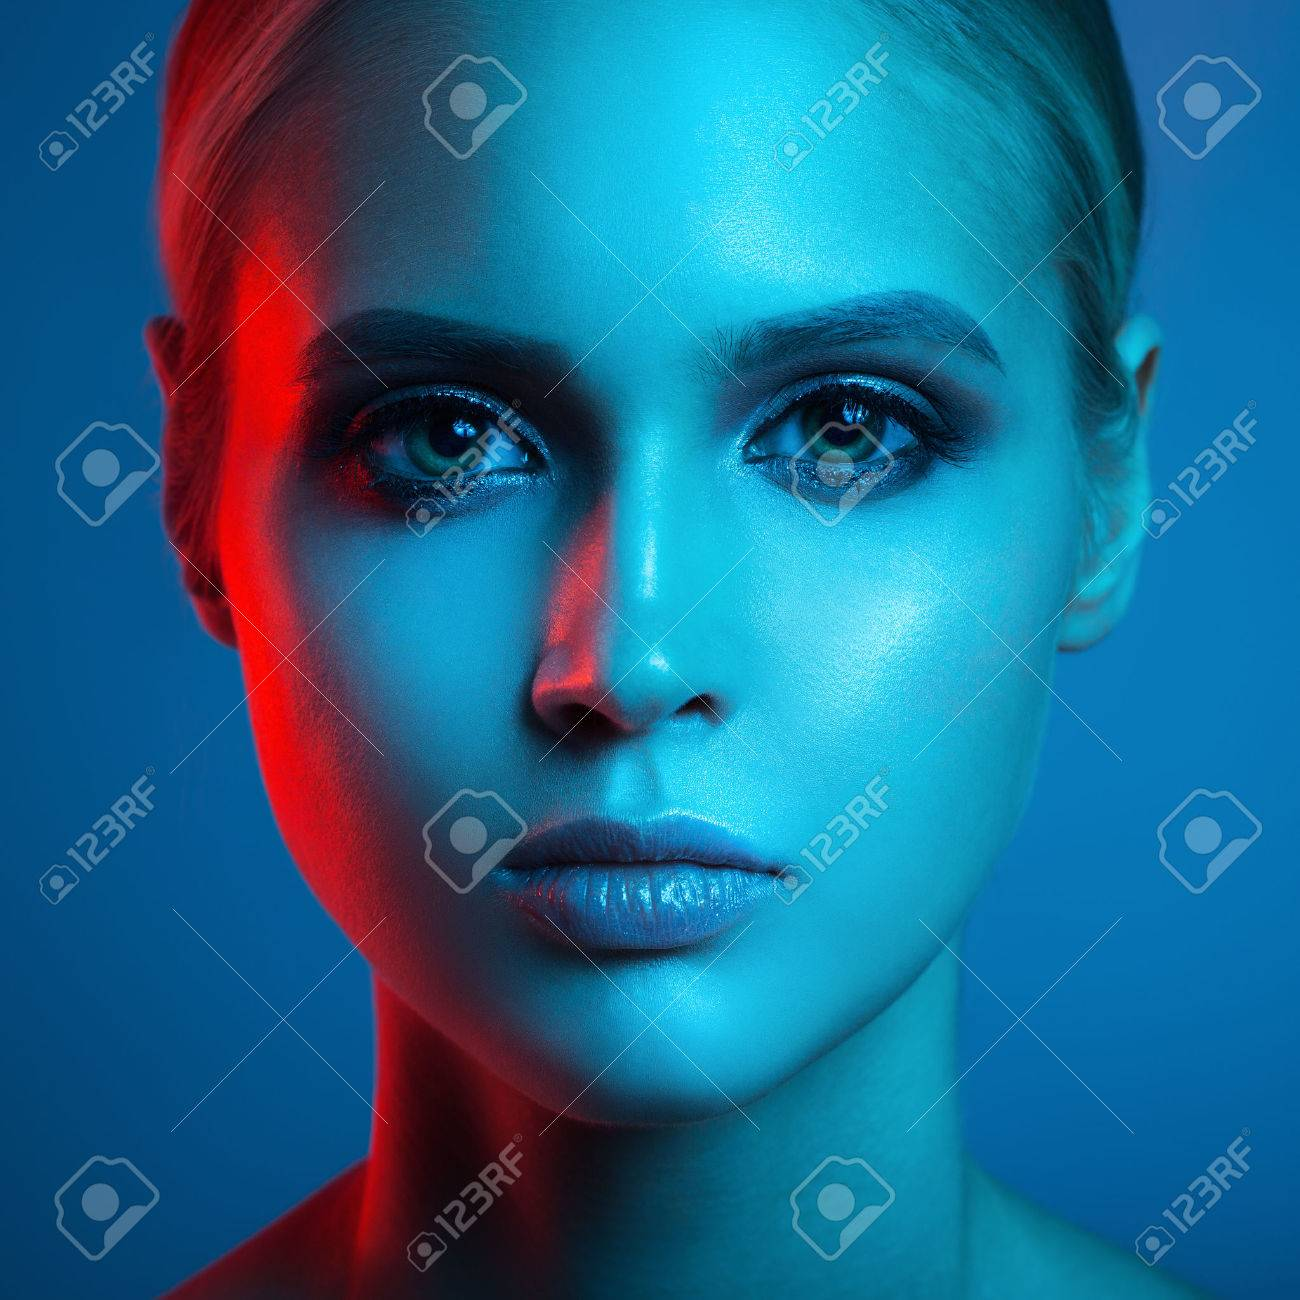 Fashion art portrait of beautiful woman face. Red and blue light color. - 75170724